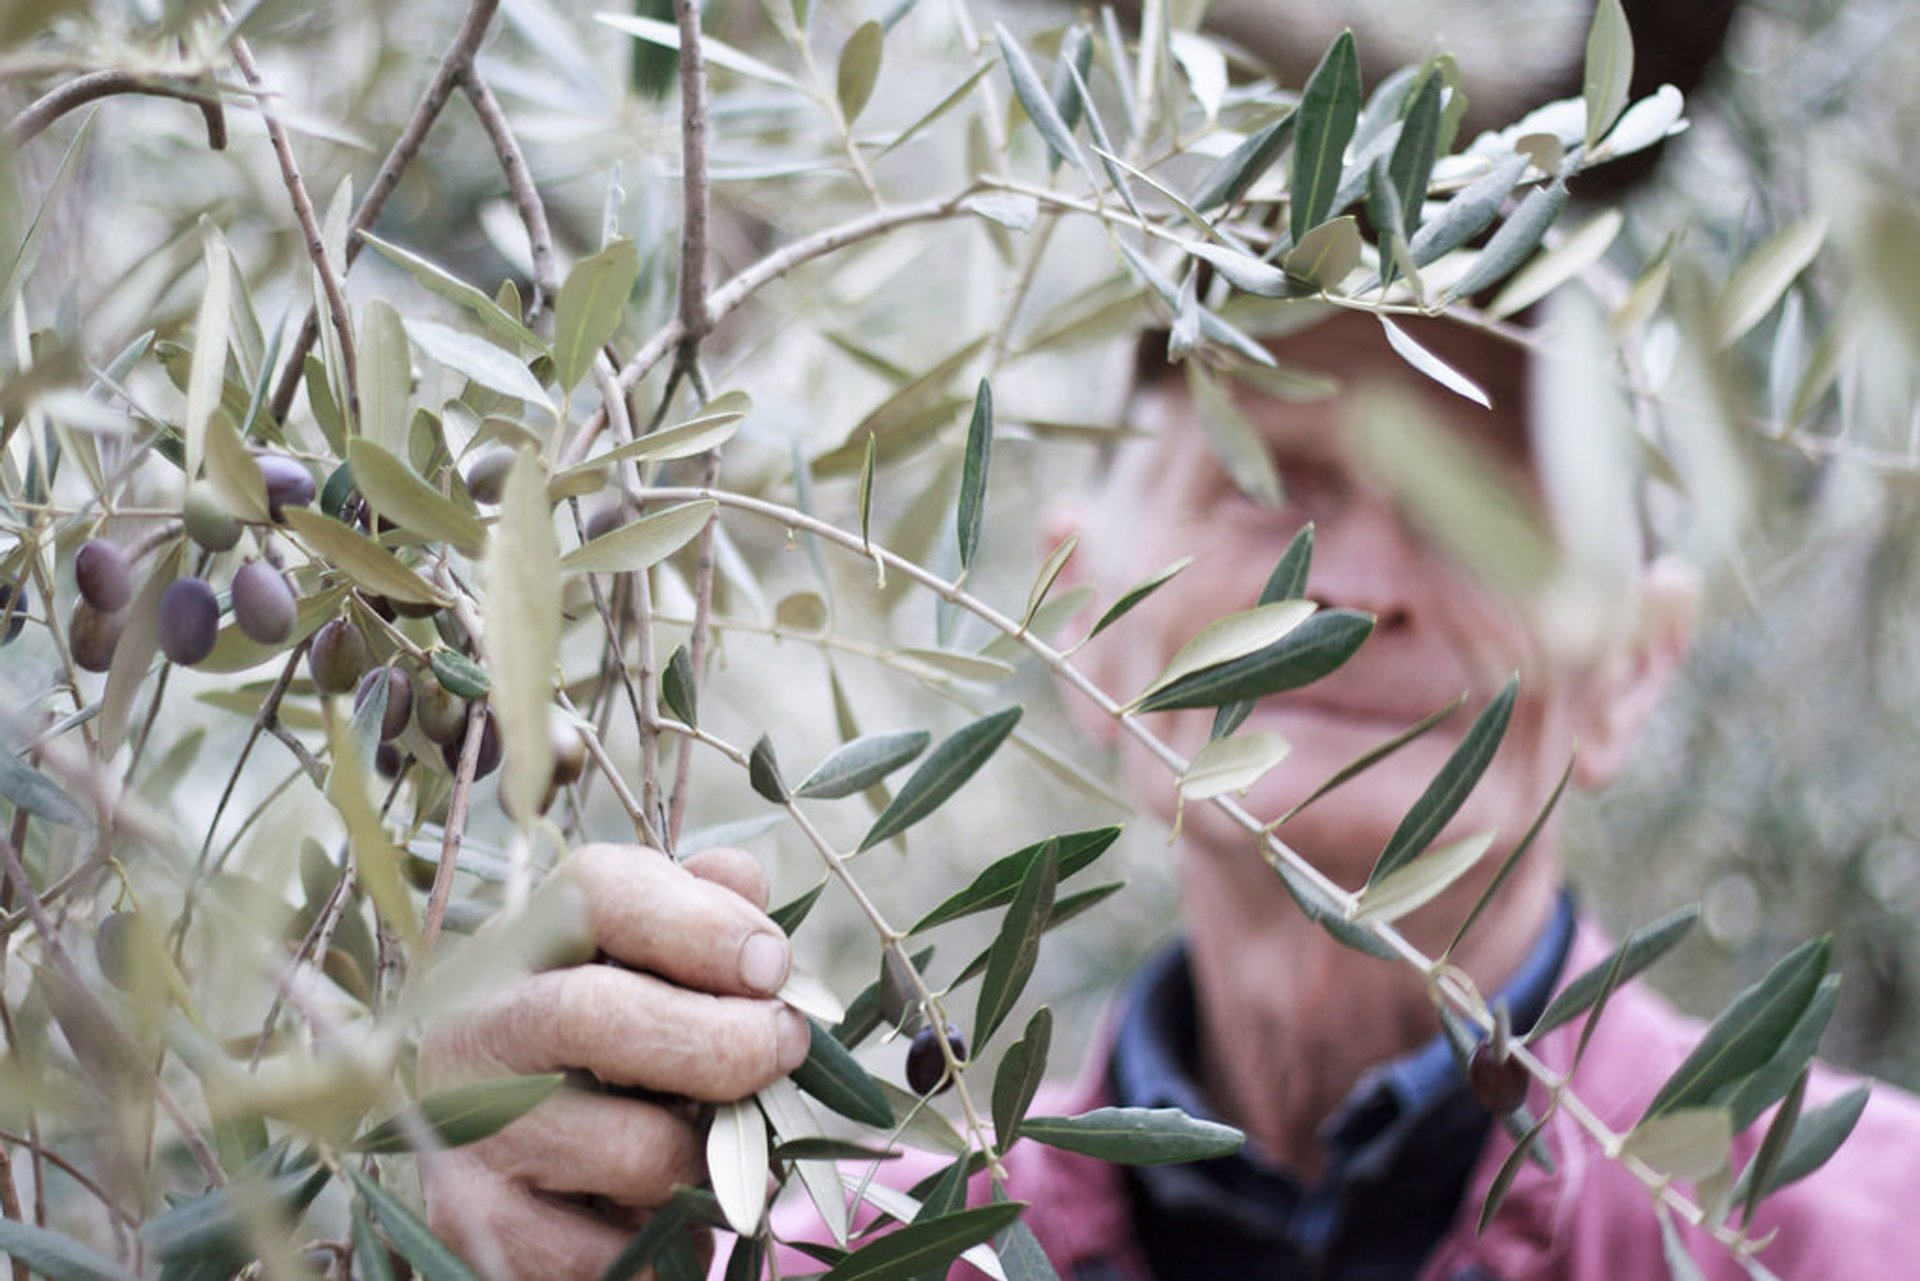 Olive Harvest in Tuscany - Best Season 2020